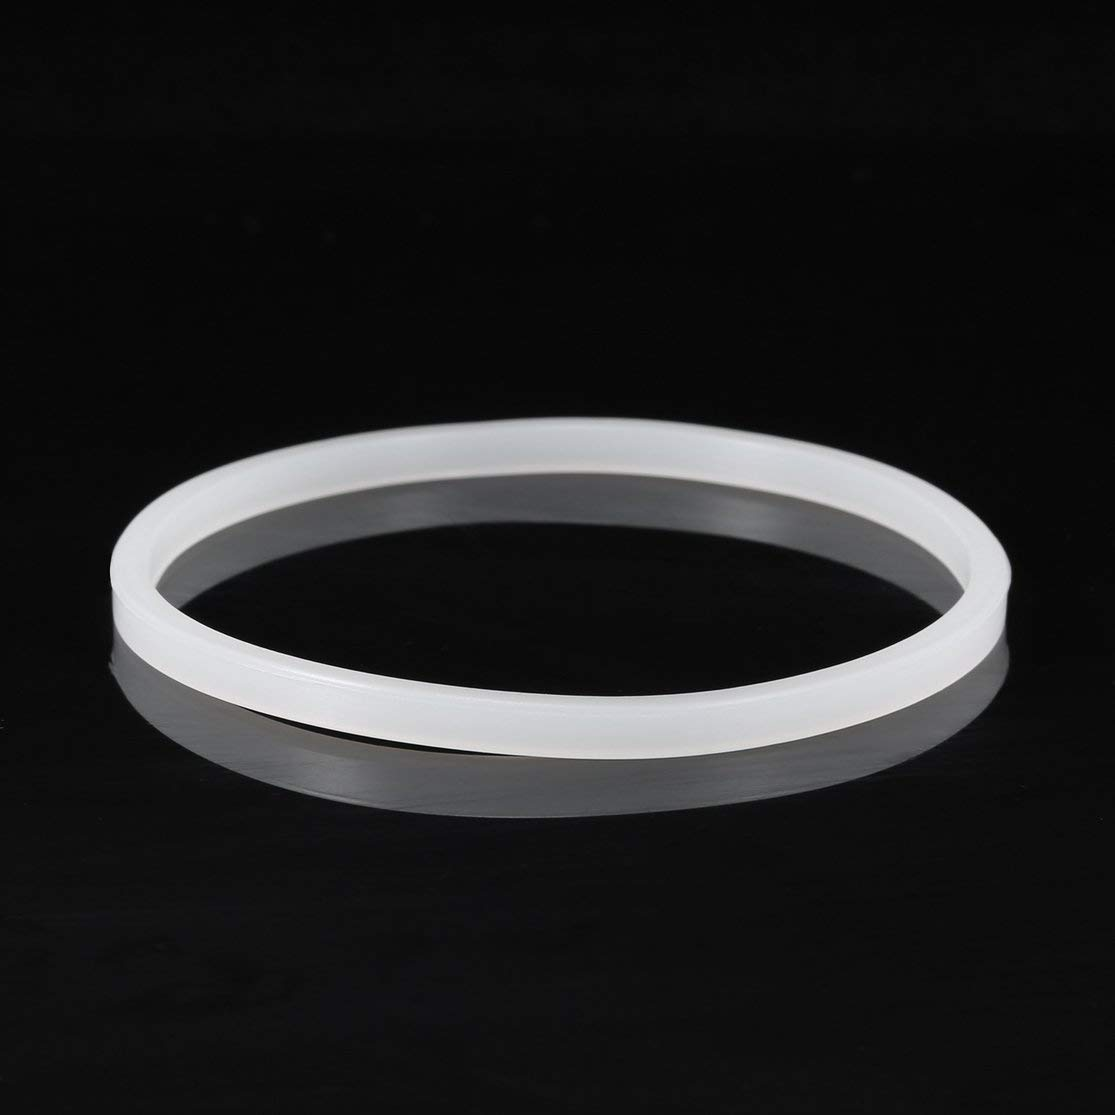 900W//600W Silicone Rubber O Shaped Design Replacement Gaskets Seal Ring Parts for Nutri-Bullet Blender Juicer Mixer-White 600W